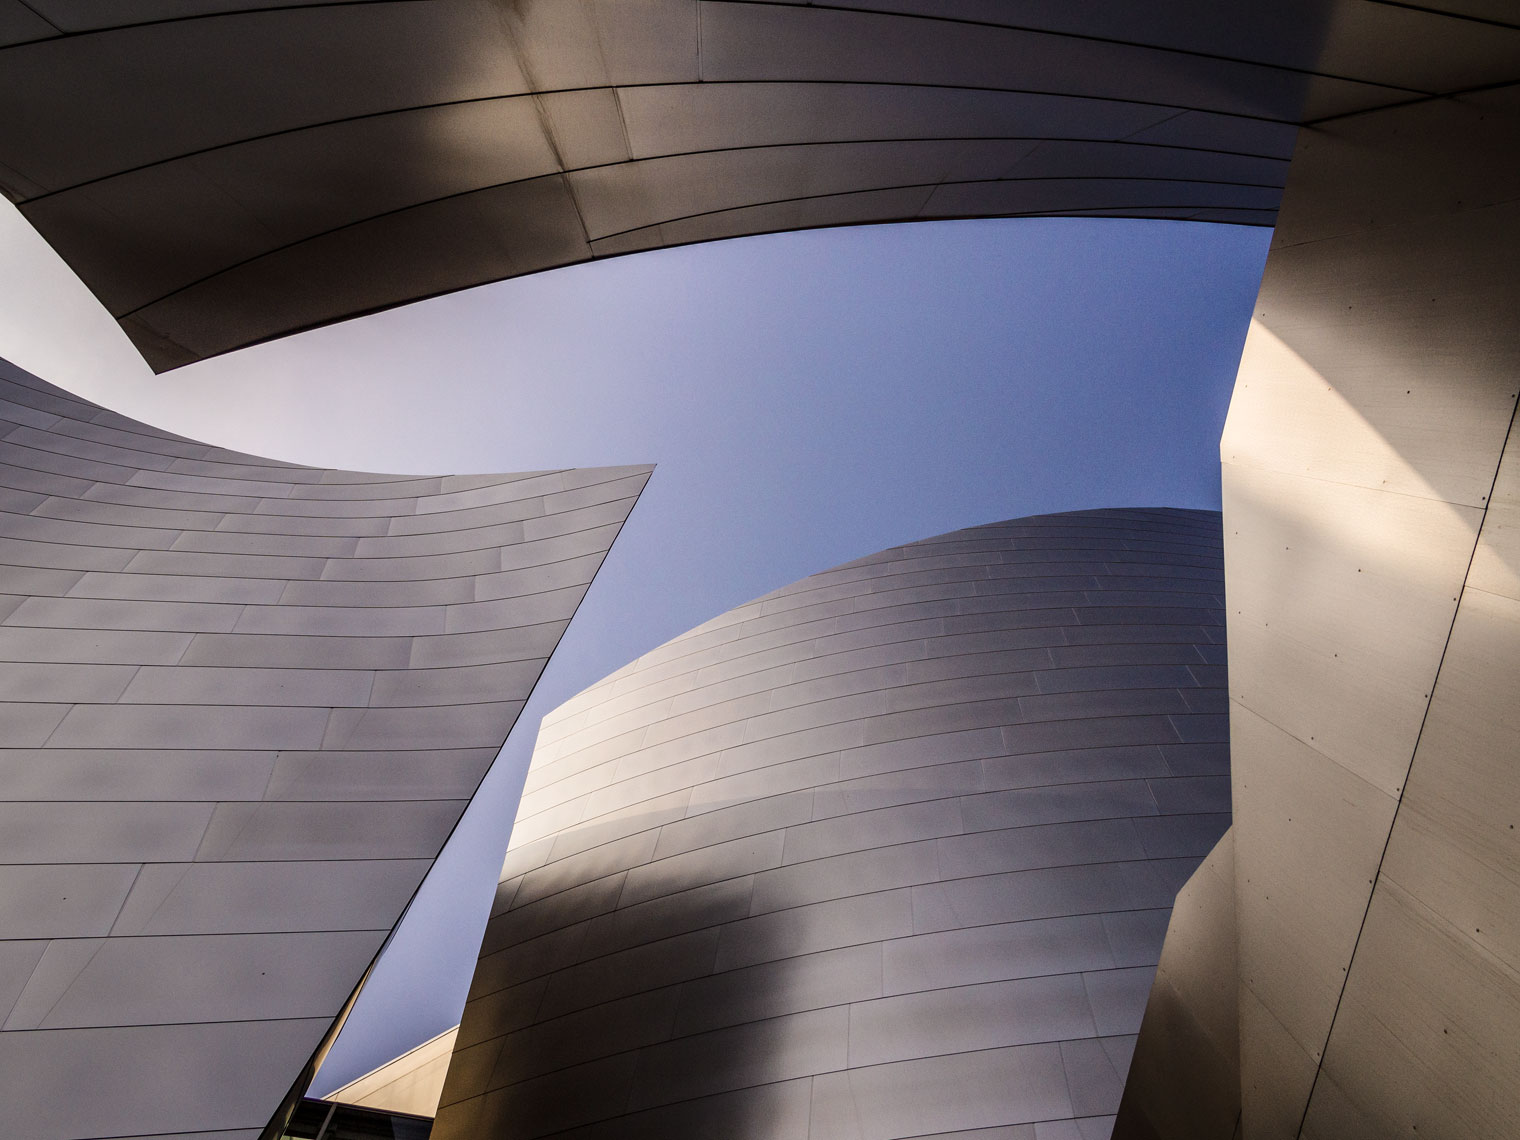 Los Angeles Disney Hall